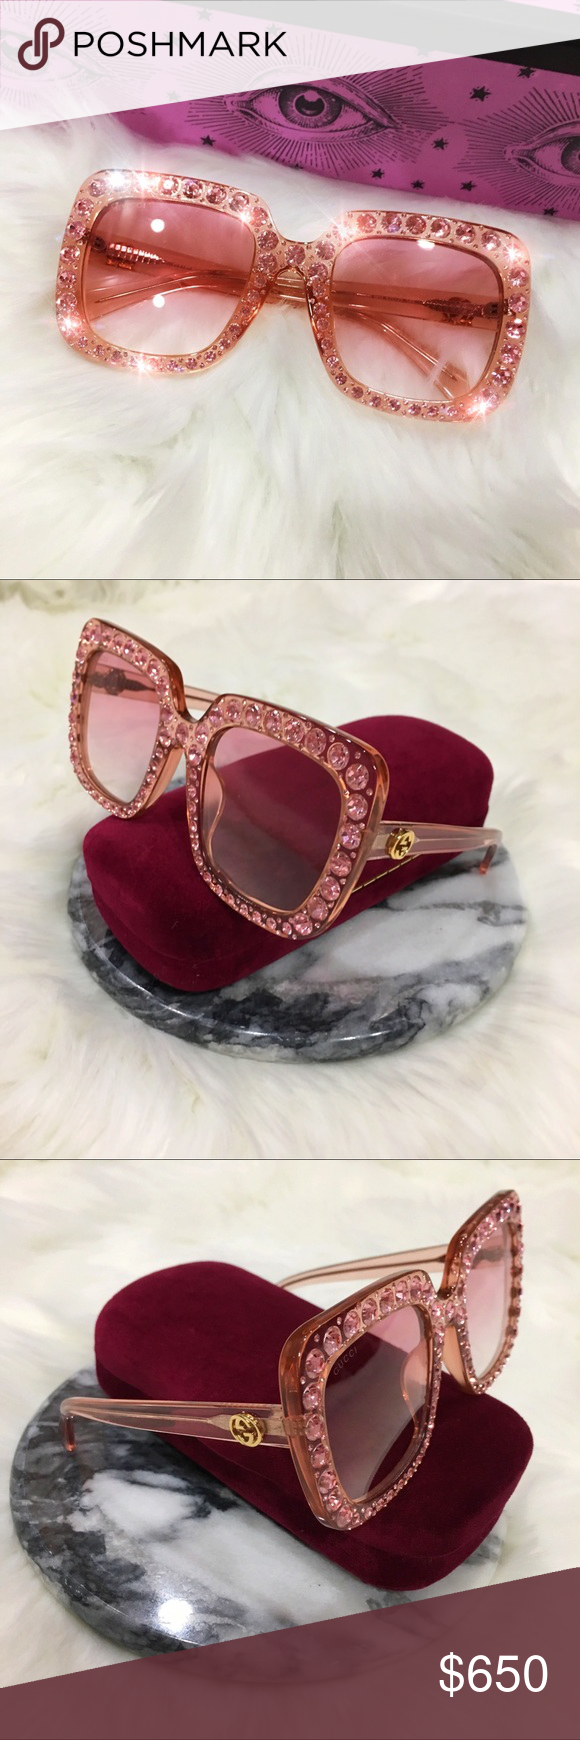 1670000669 Authentic Gucci Oversize Pink Crystal Sunglasses Authentic Gucci Oversize  Square-Frame Sunglasses with Crystals - GG00148S Excellent Condition